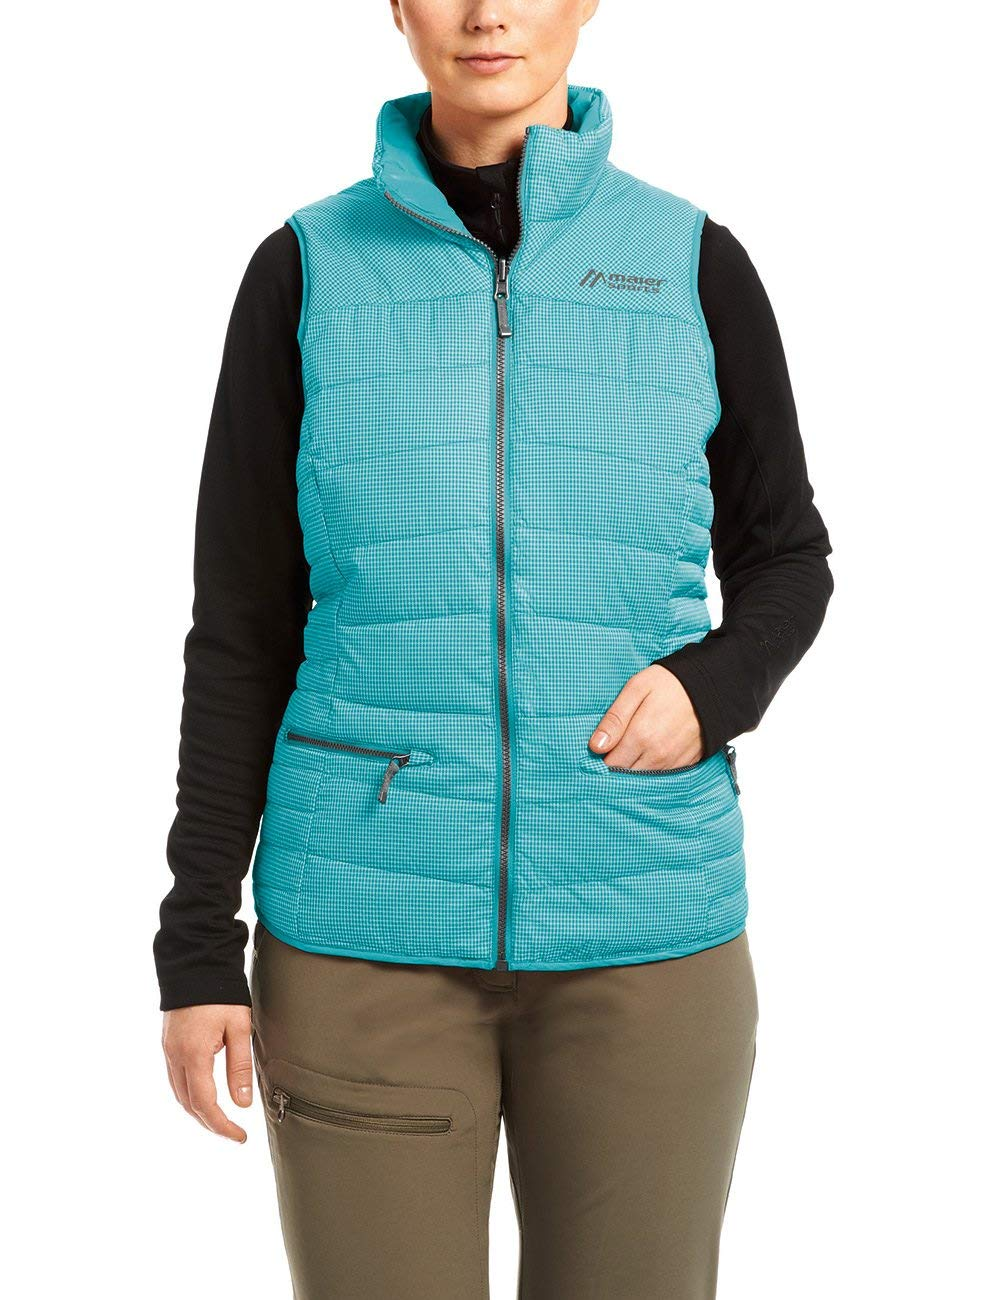 Maier Sports Damen Wendeweste Carpegna peacockblue 50